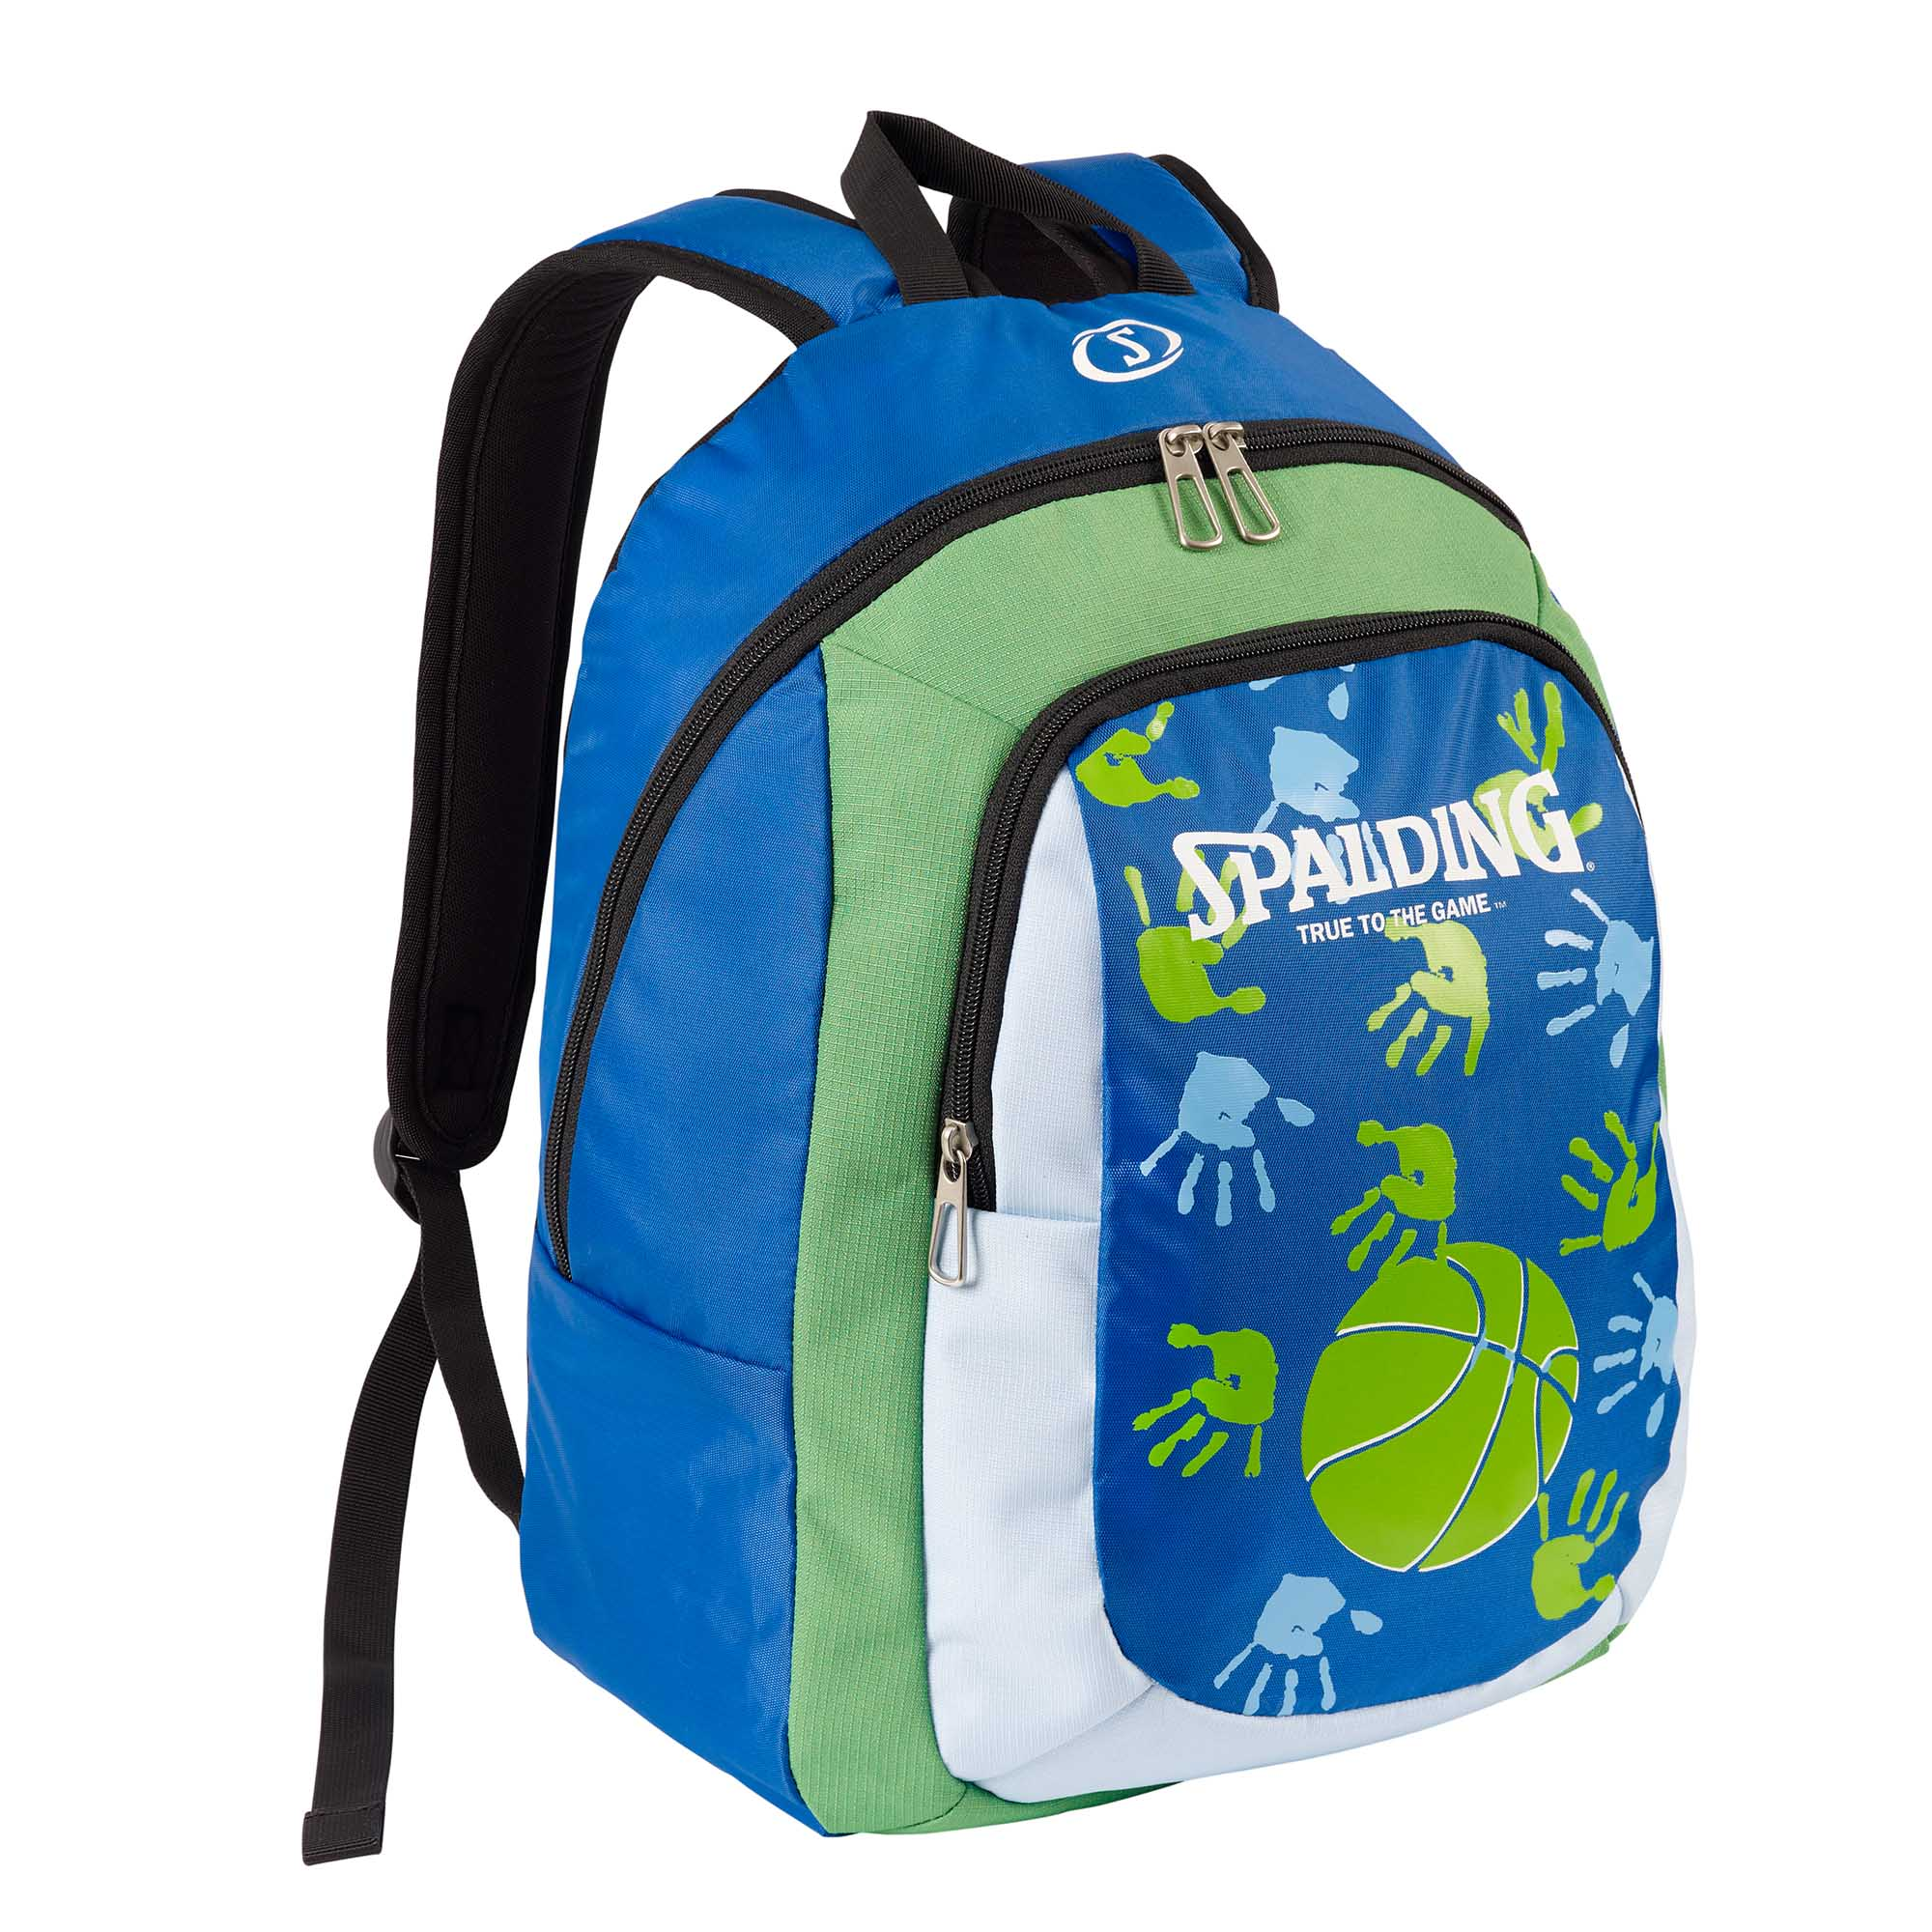 paydayloansboise.gq provides kids backpacks items from China top selected School Bags, Bags, Luggages & Accessories suppliers at wholesale prices with worldwide delivery. You can find backpack, Backpacks kids backpacks free shipping, backpacks for kids and view 77 kids backpacks reviews to help you choose.